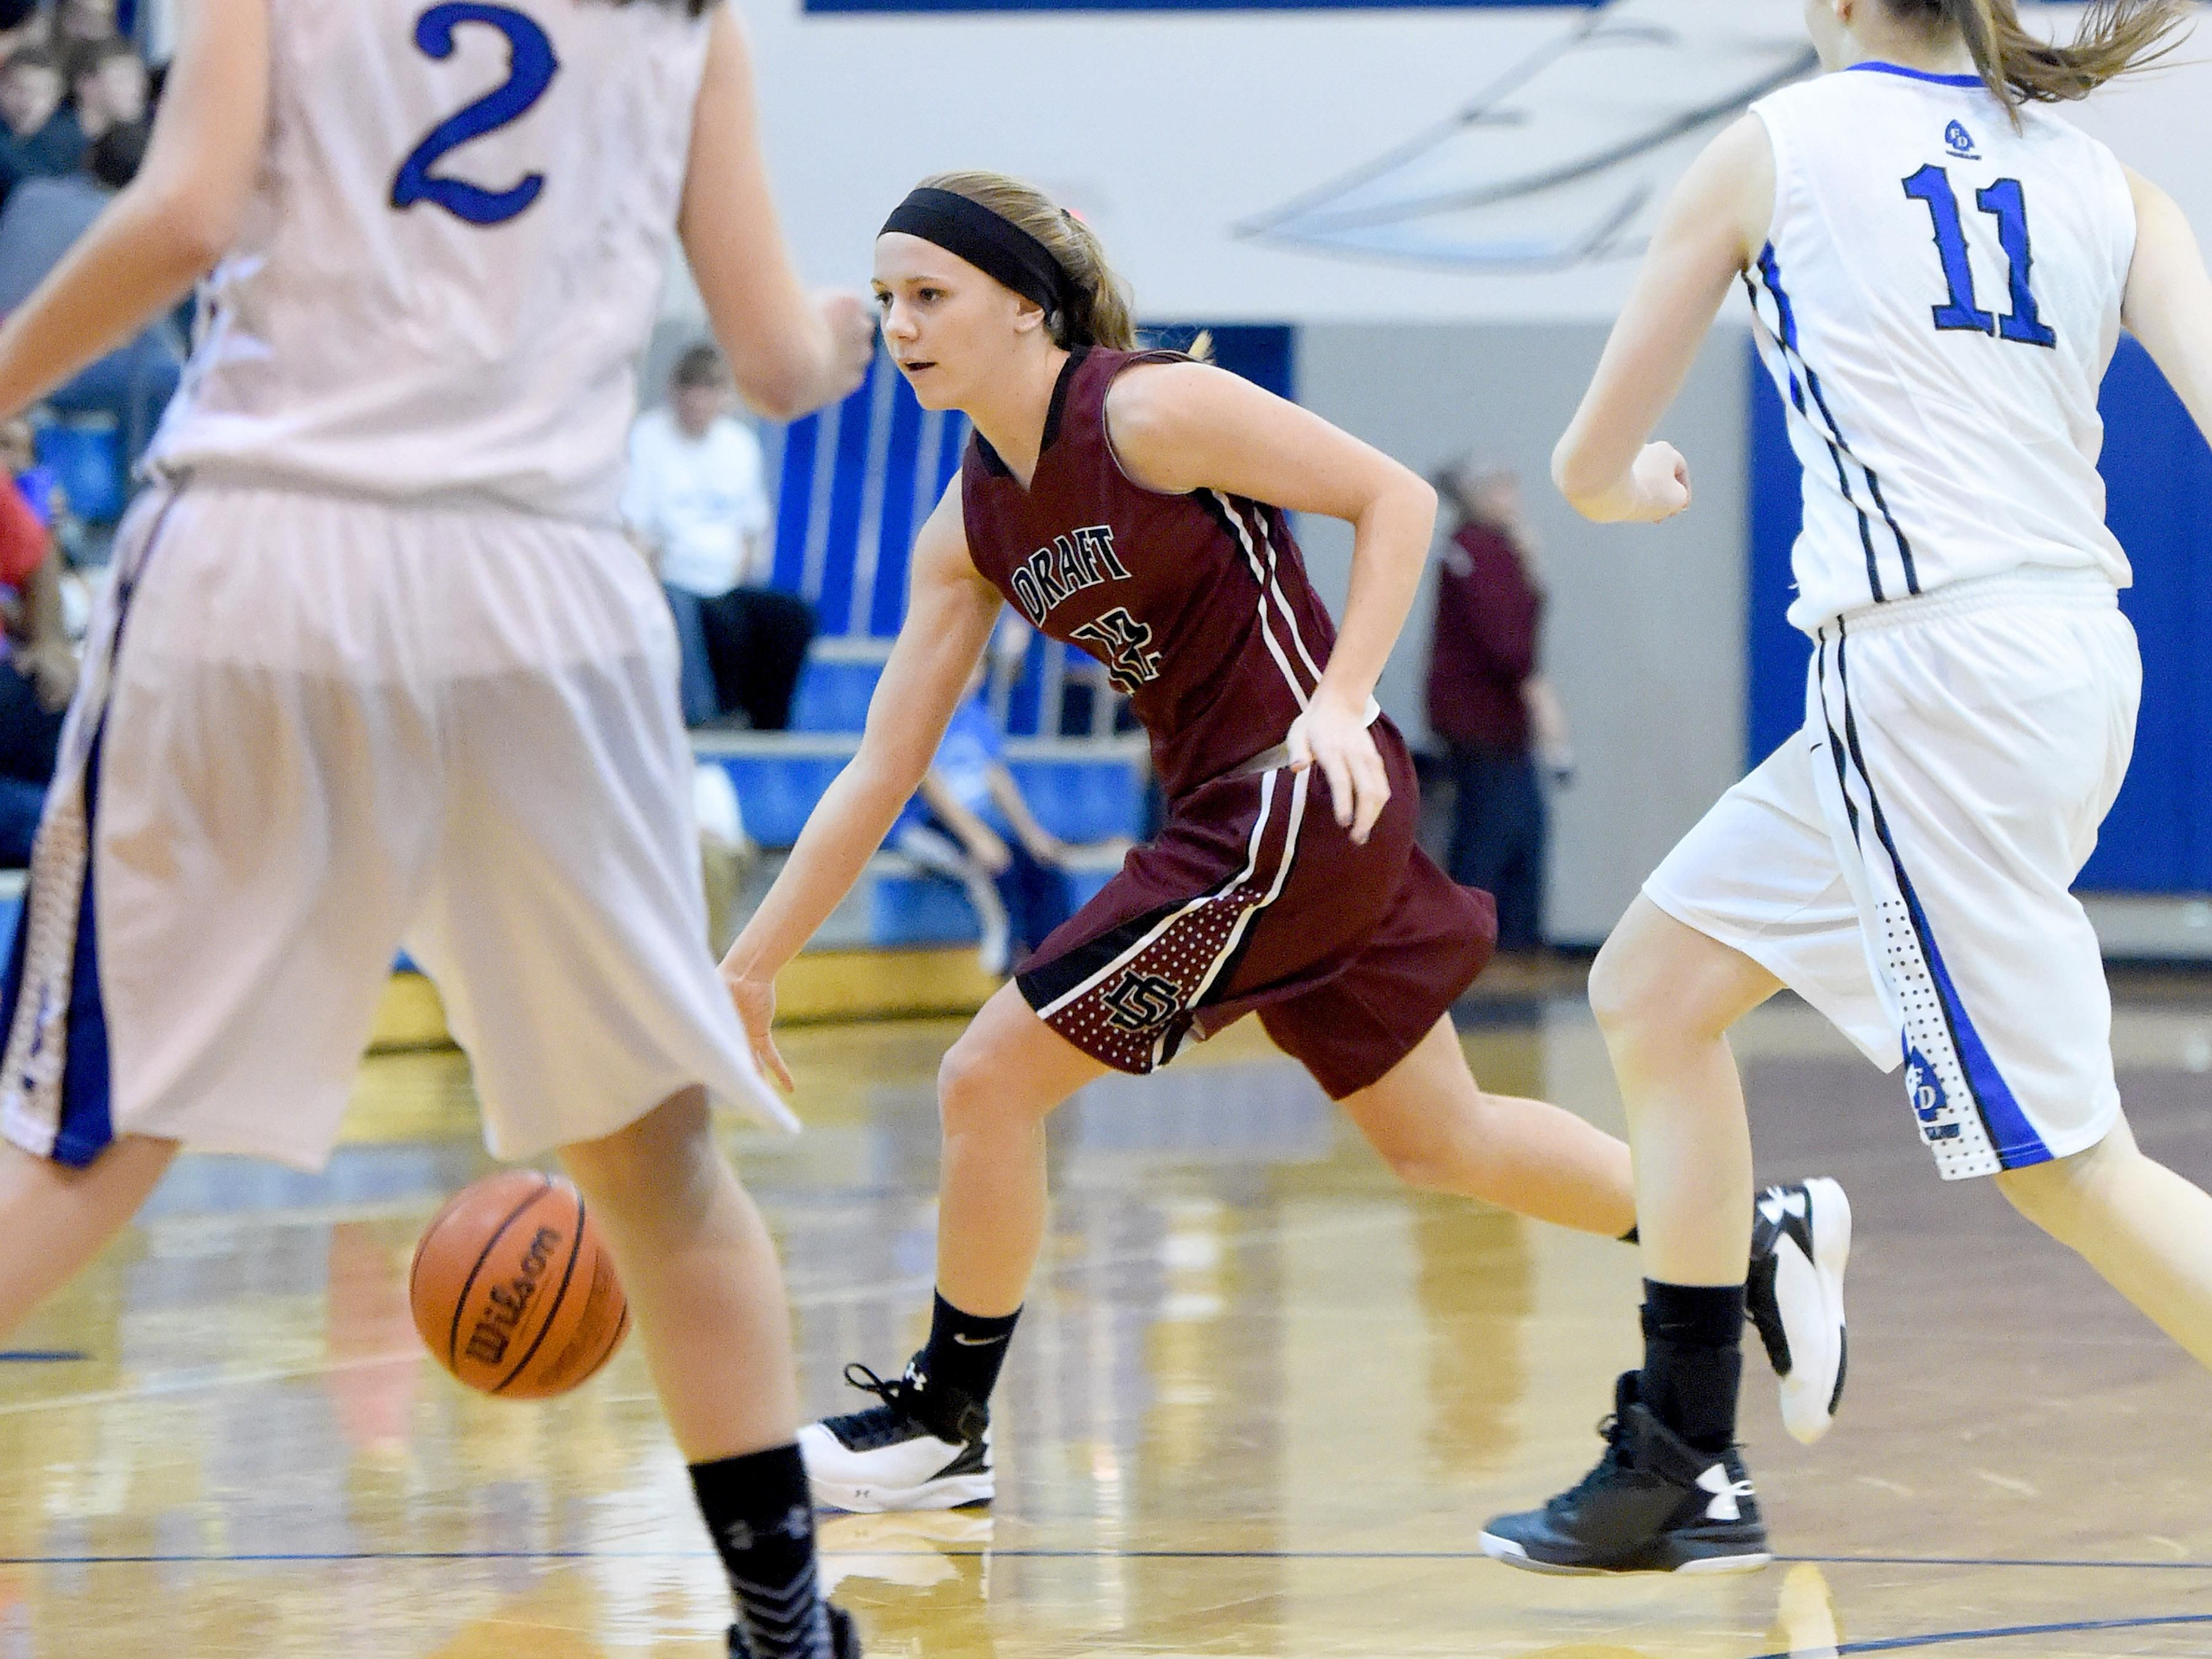 Stuarts Draft's Deborah Black moves the ball as she looks for an opening during a basketball game played in Fort Defiance on Friday, Dec. 11, 2015.